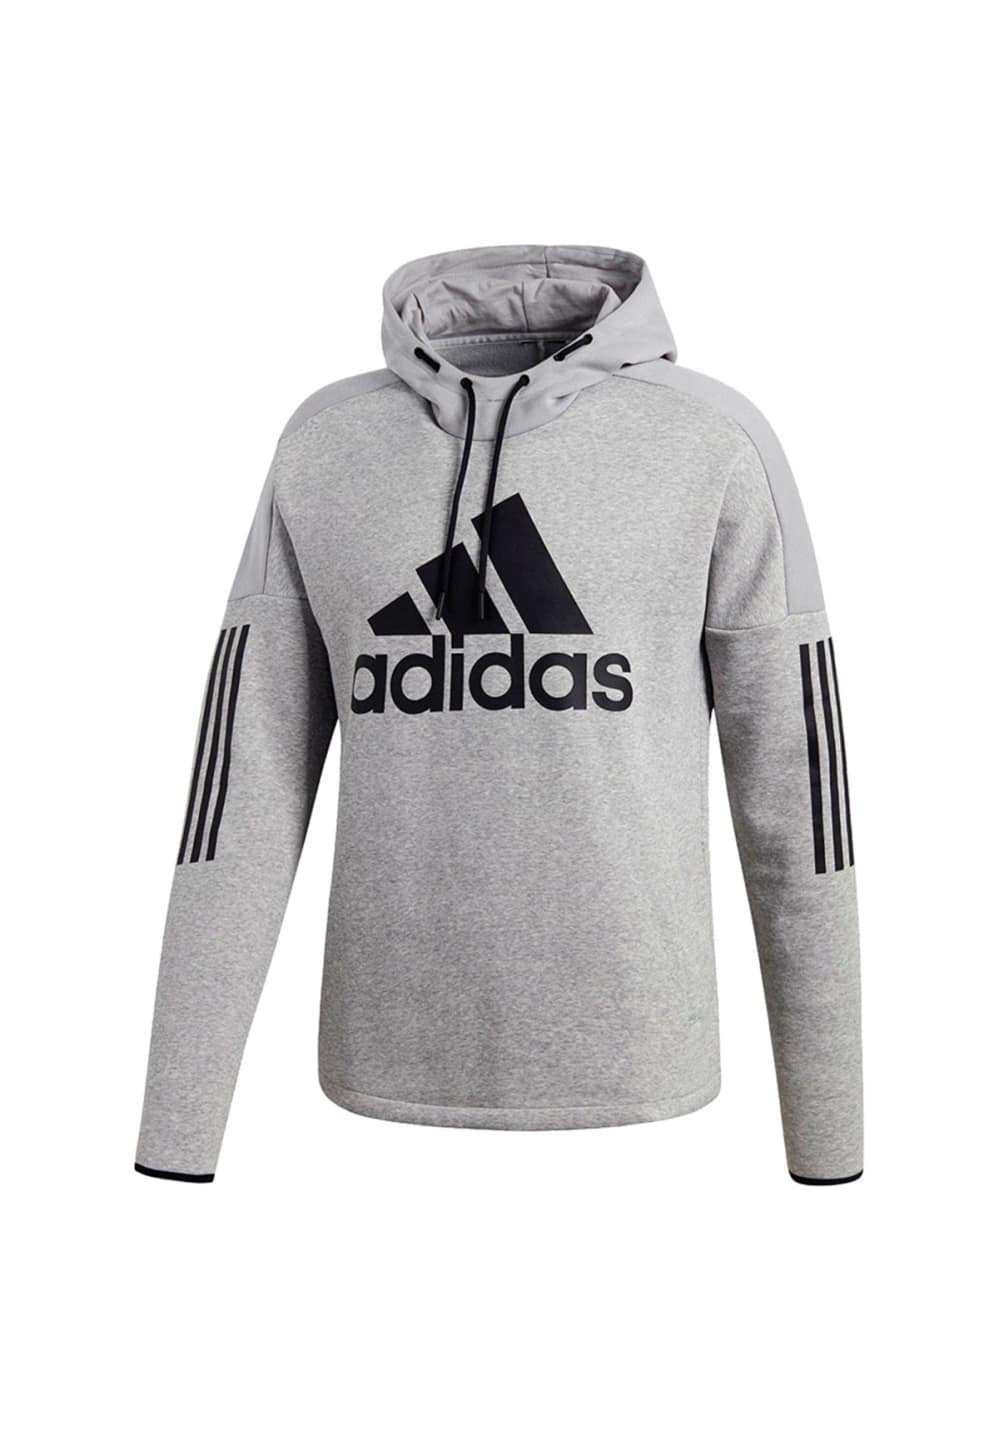 0fda7e1179 adidas Sport Id Logo Hoodie - Sweatshirts / Hoodies for Men - Grey